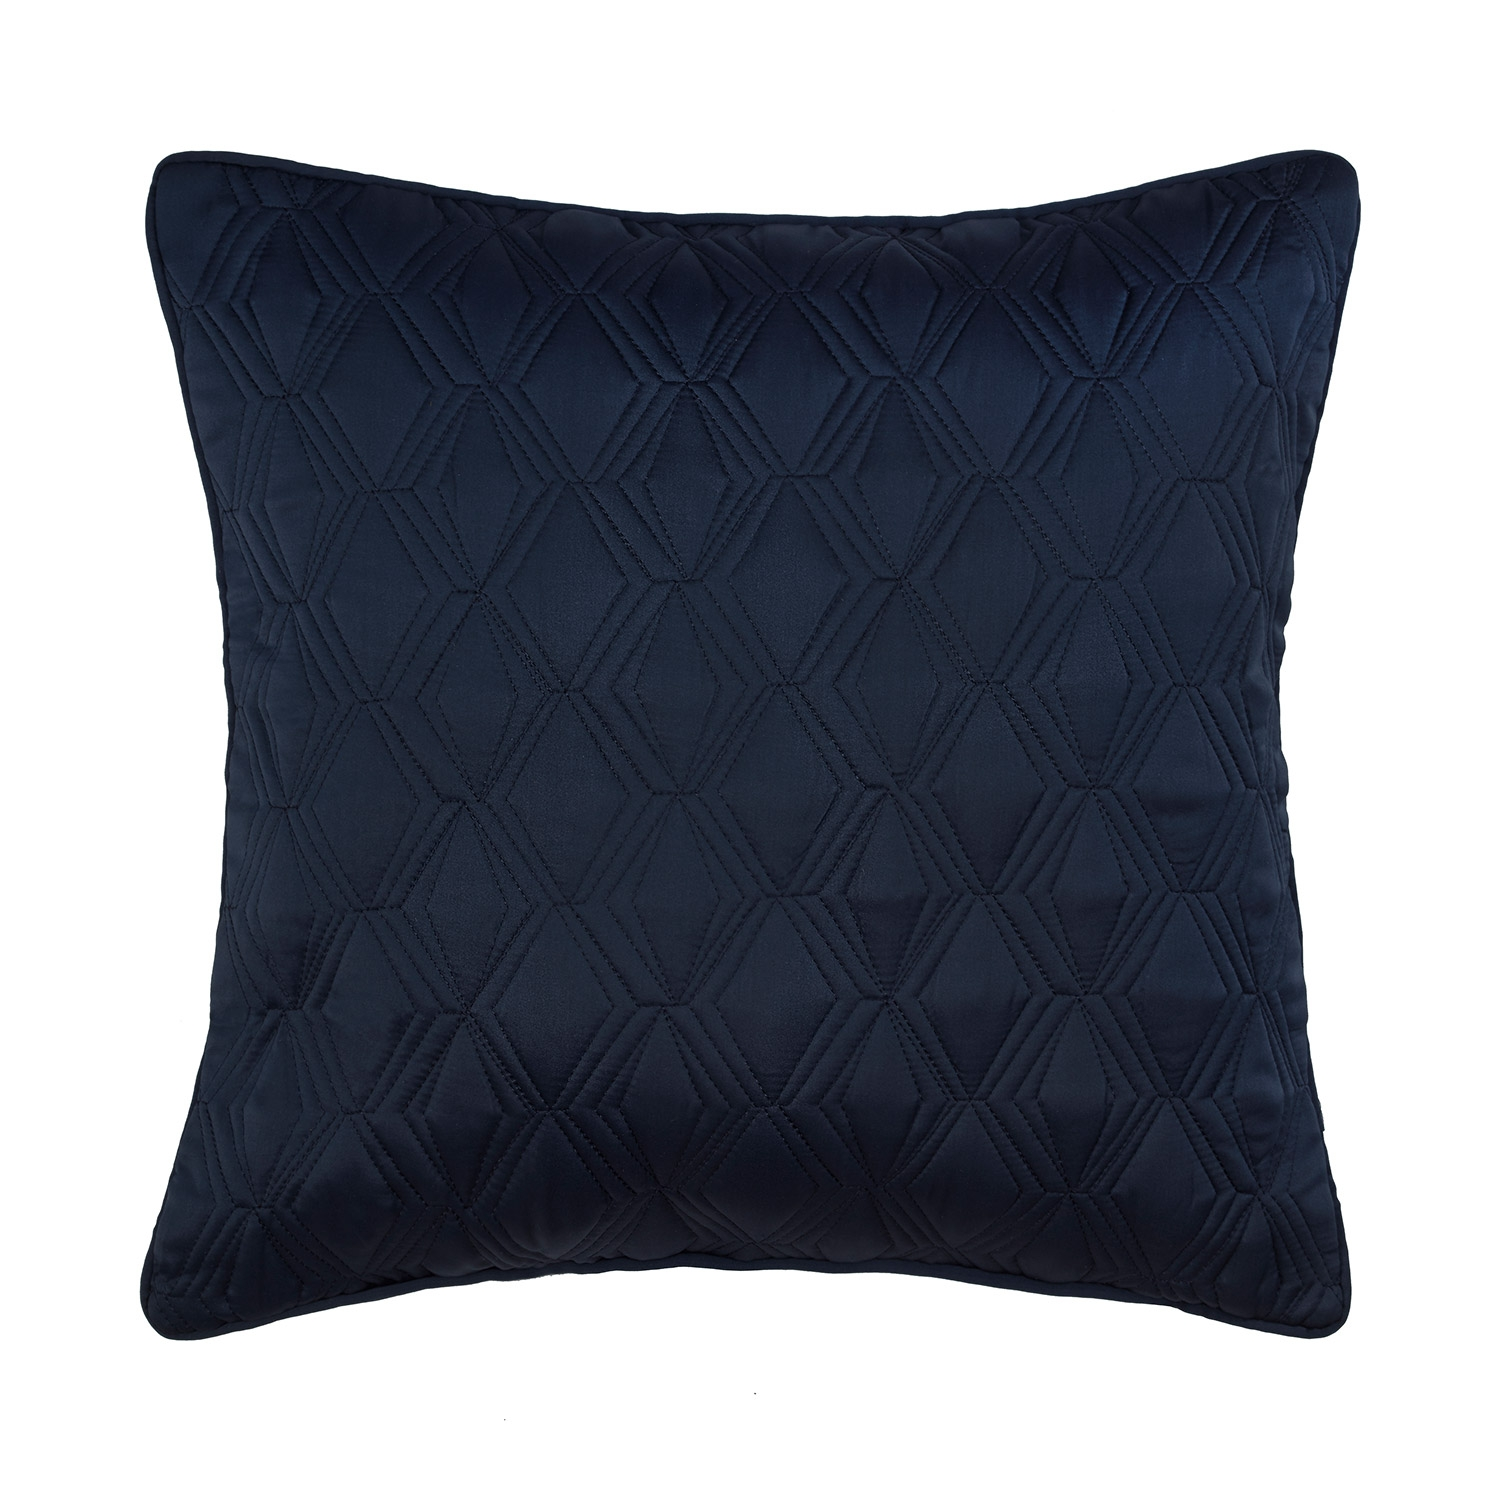 Blossom Navy Luxury Quilted Square Cushion Cover